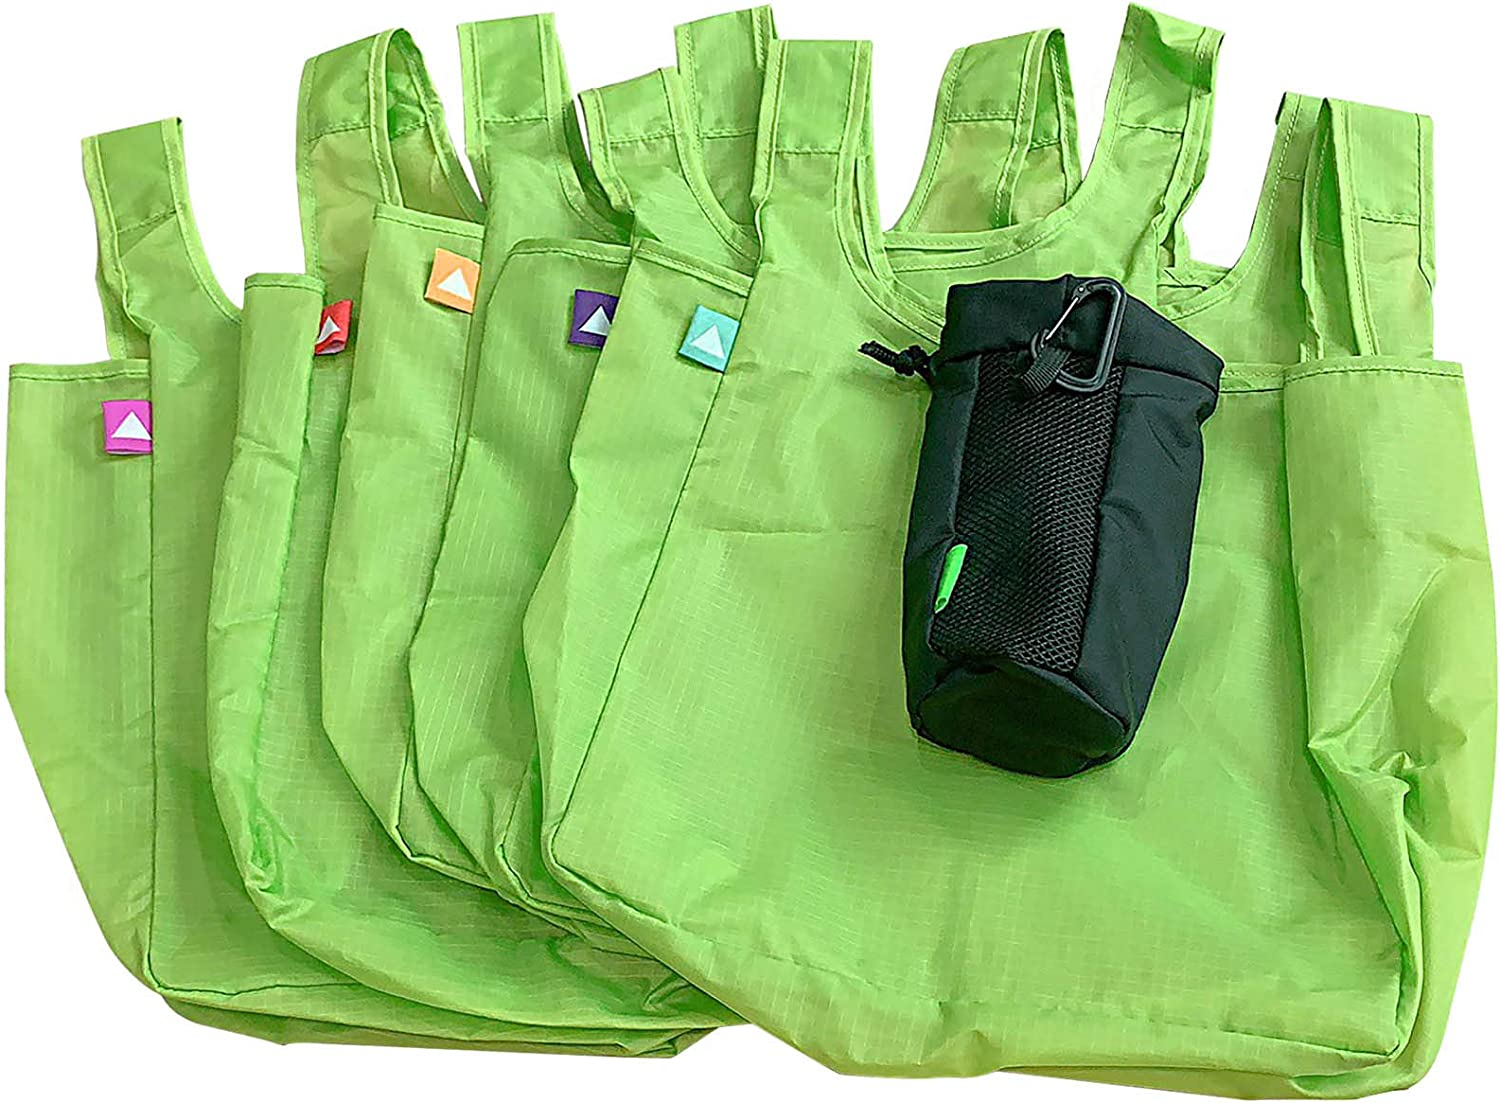 SEAL limited product Our shop most popular Reusable Grocery Bags with Pouch Compact Travel Totes Shopping